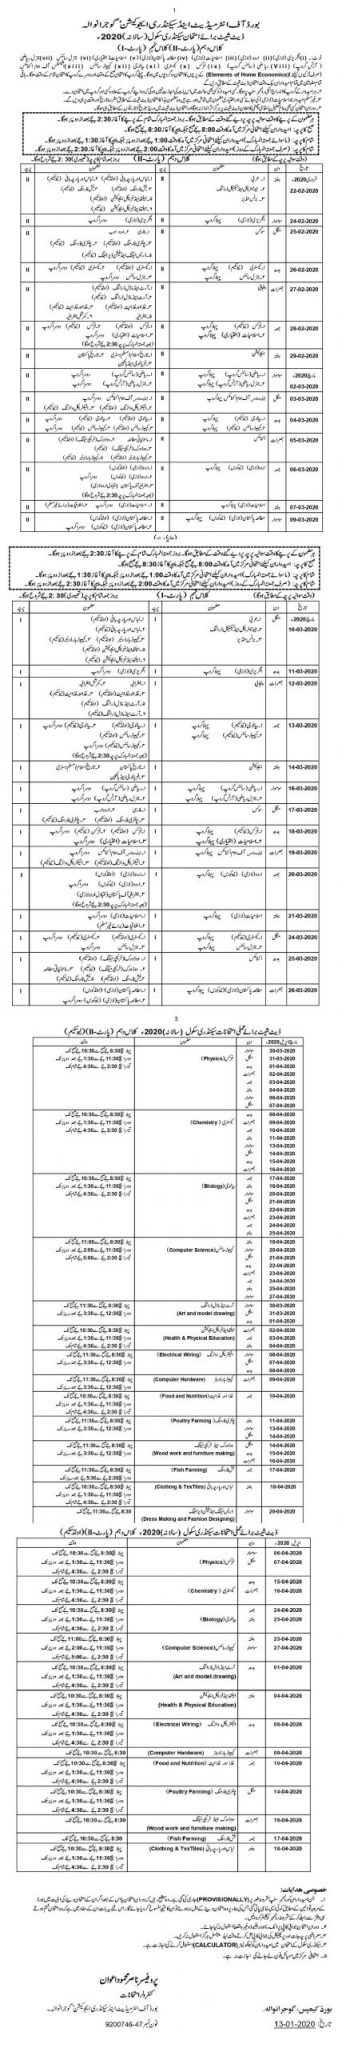 BISE Gujranwala Board 9th 10th Class Matric Date Sheet 2020 bisegrw Part 1, 2